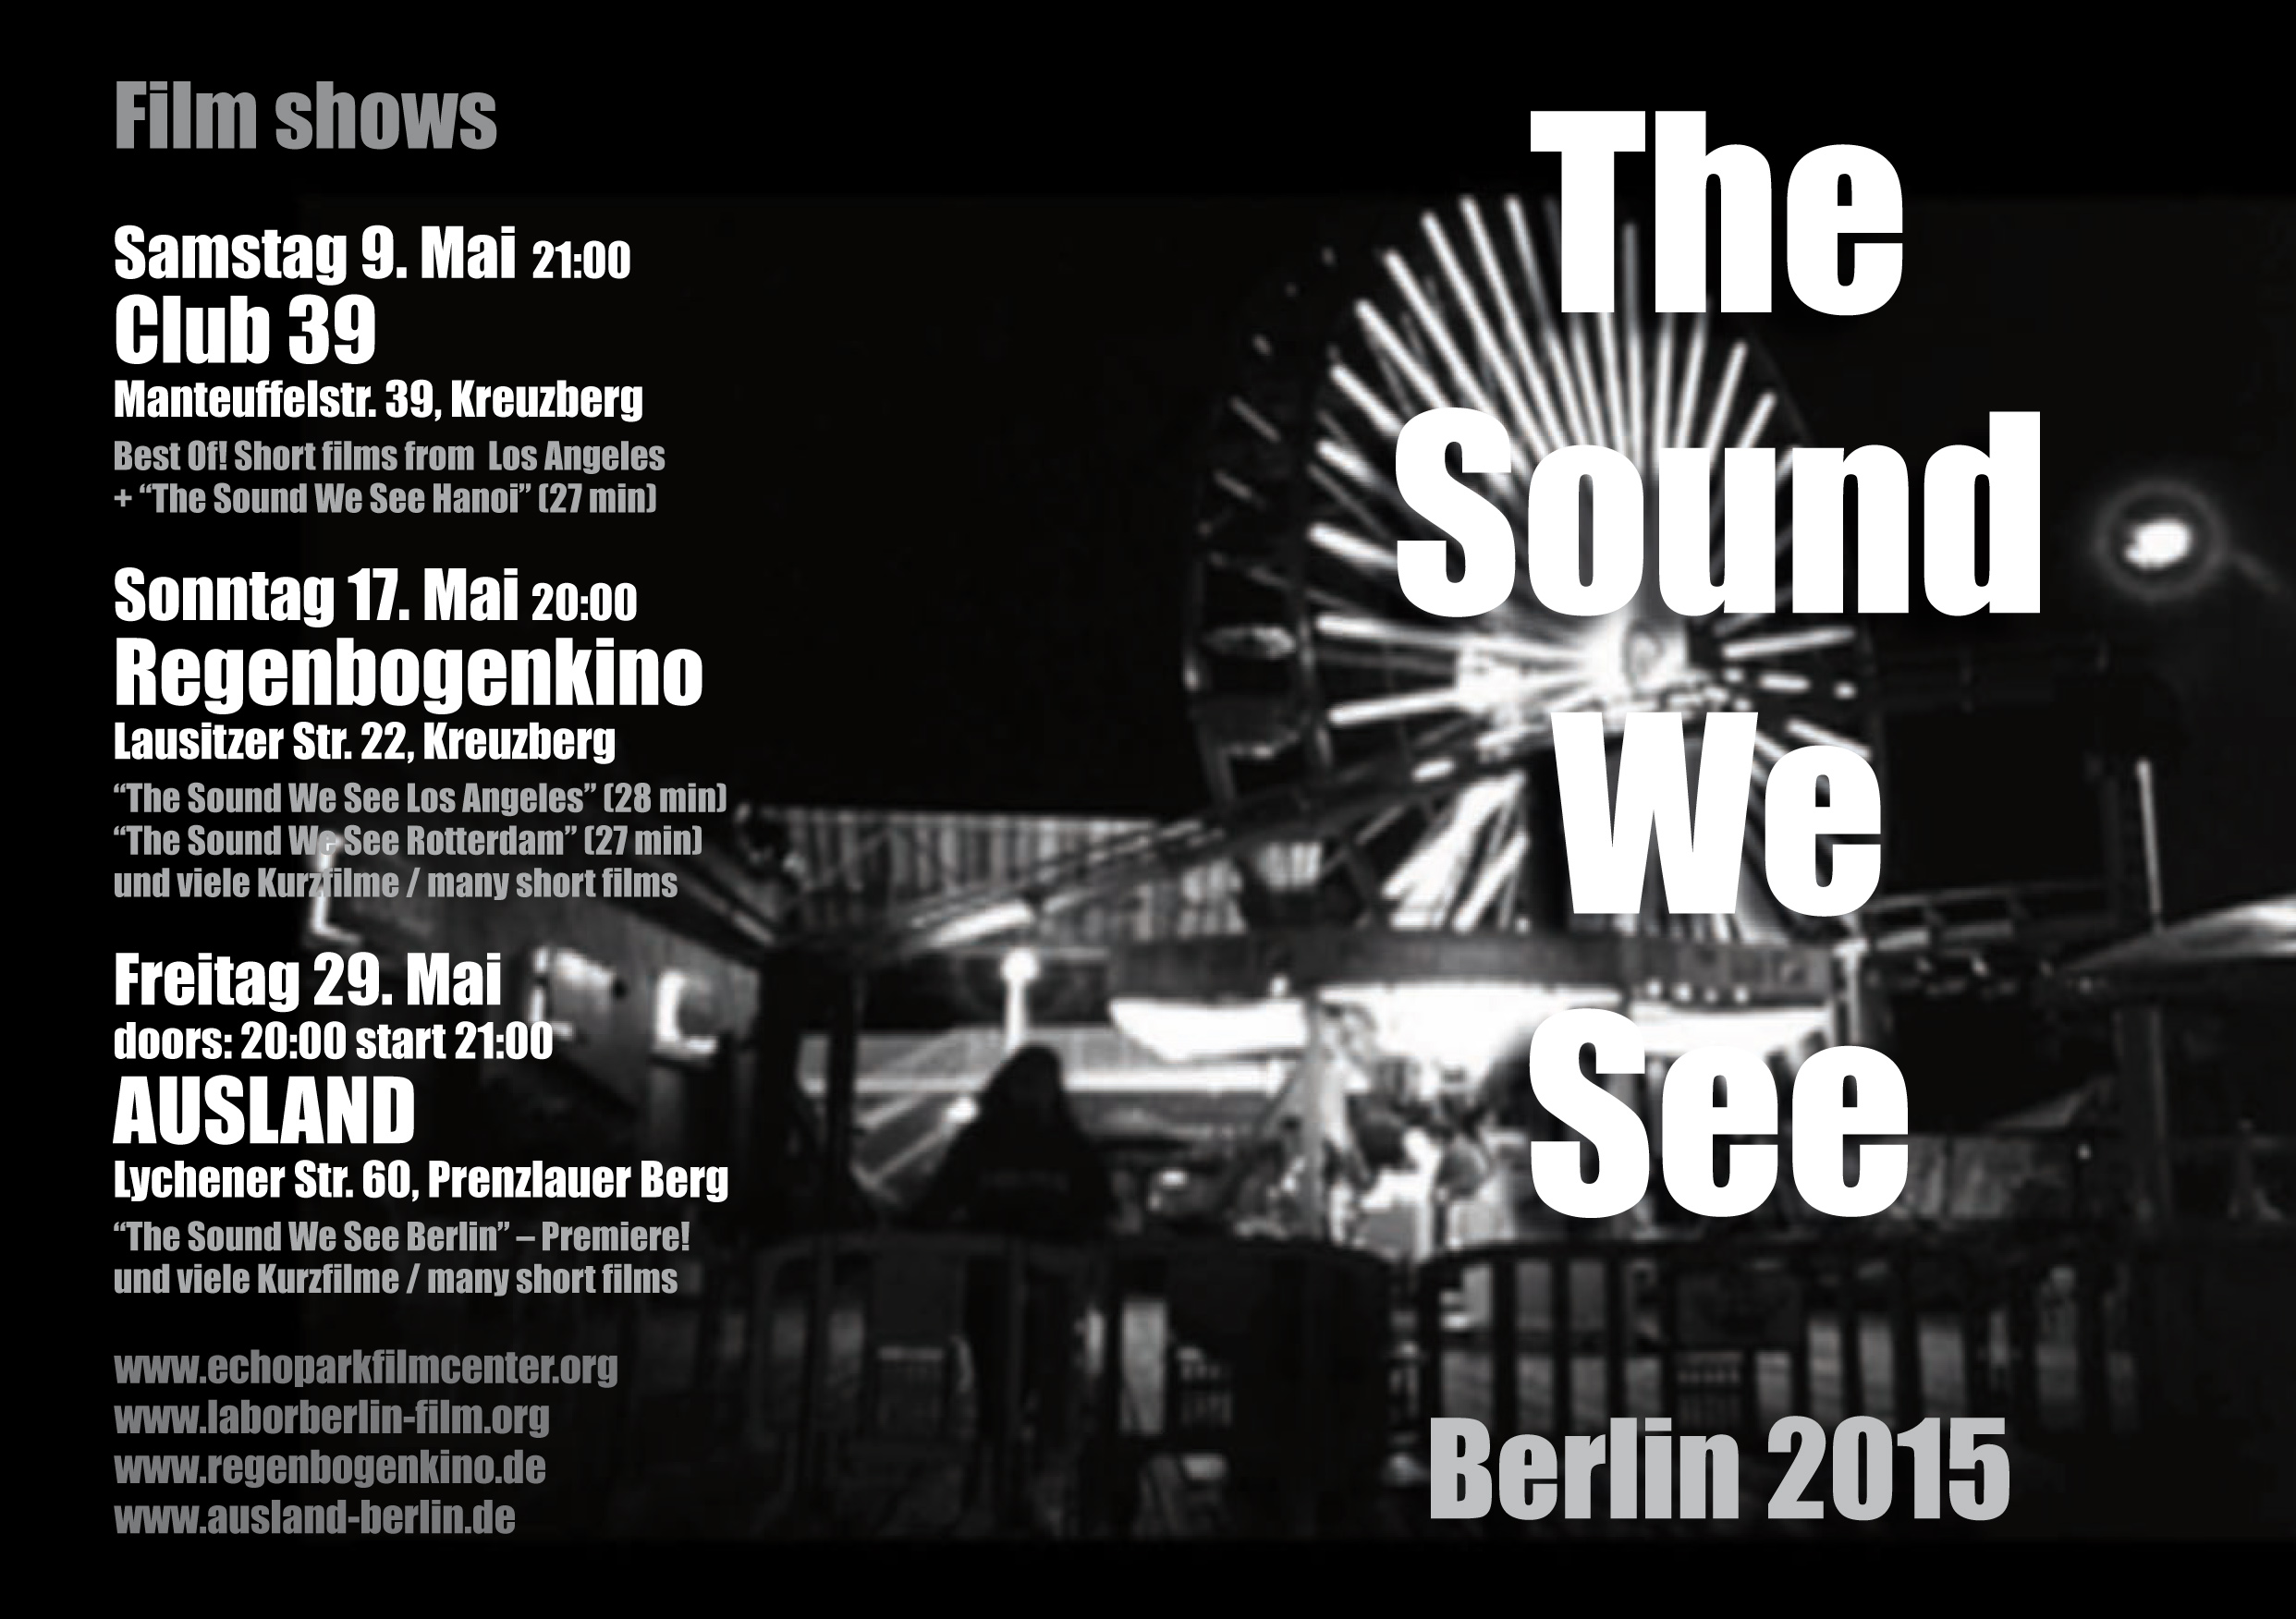 thesoundwesee-berlin.indd